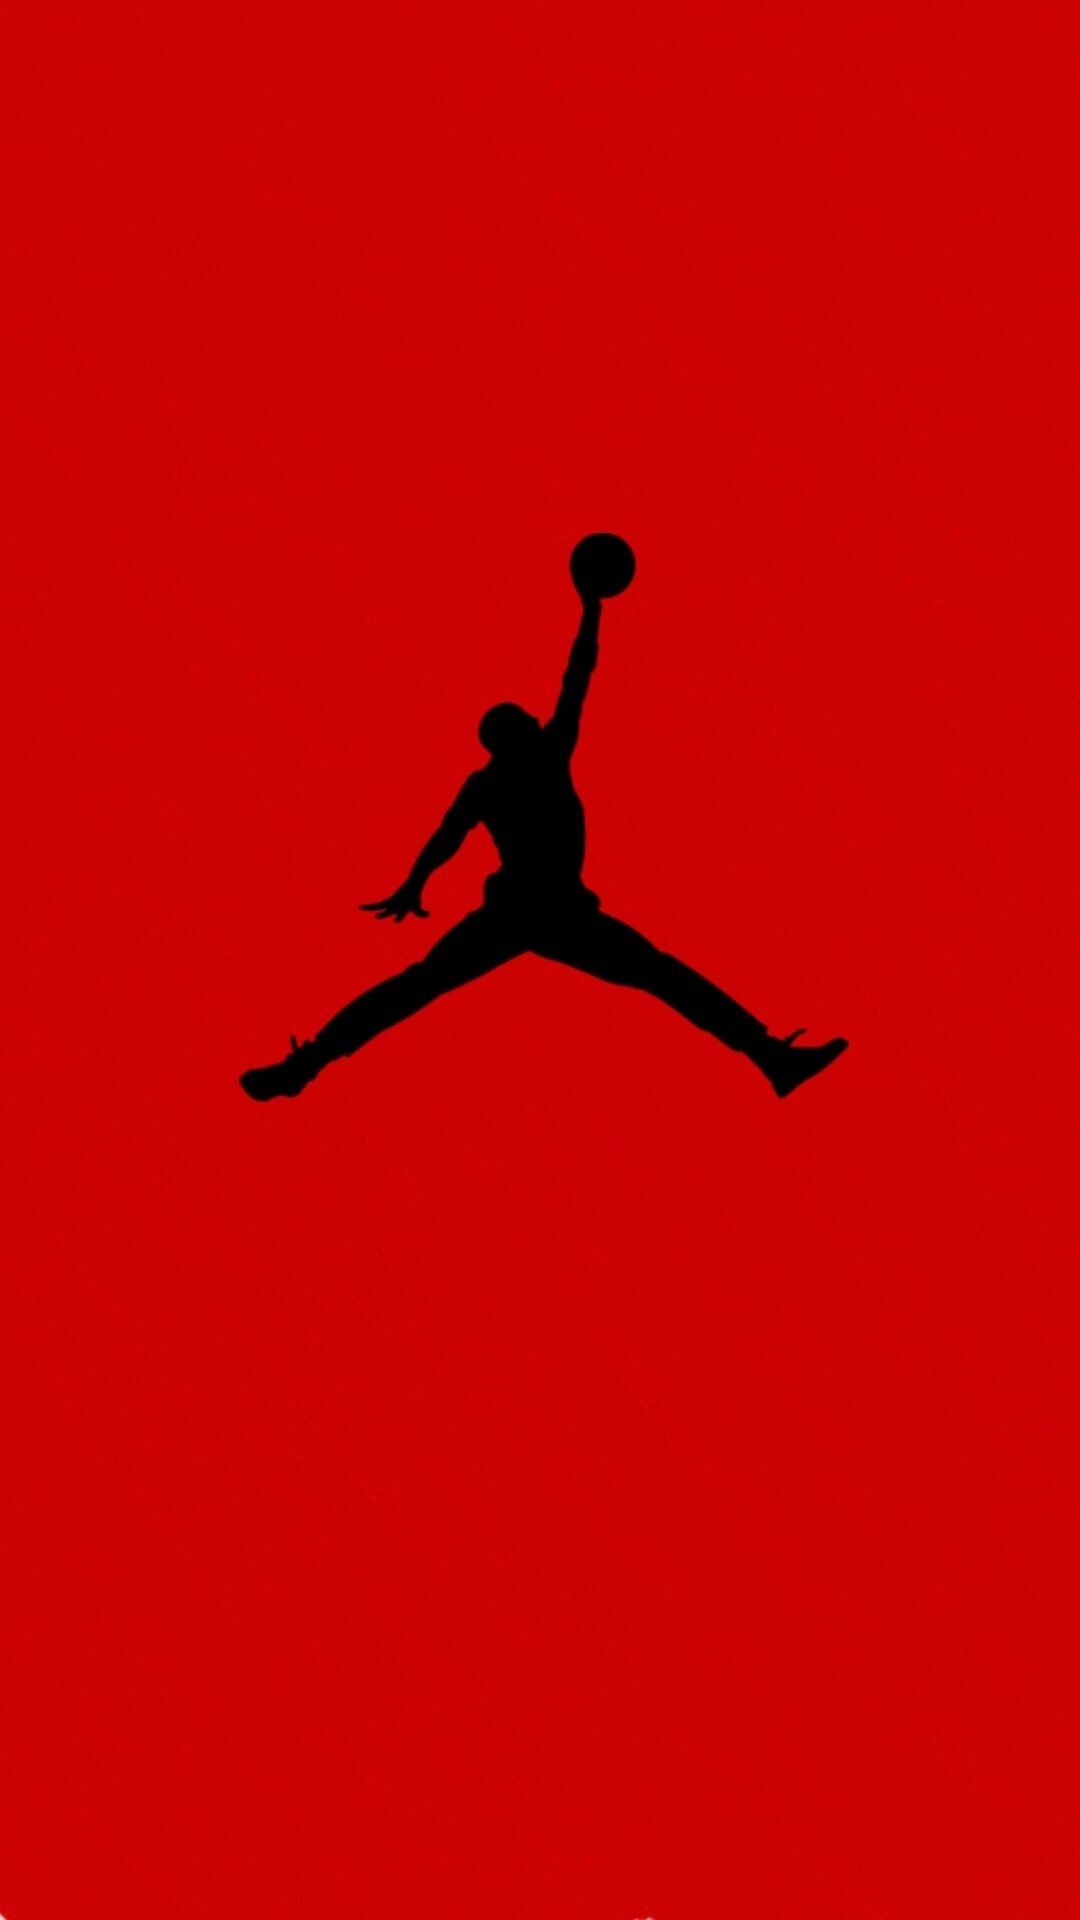 air jordan logo iphone background | backgrounds for iphone | pinterest